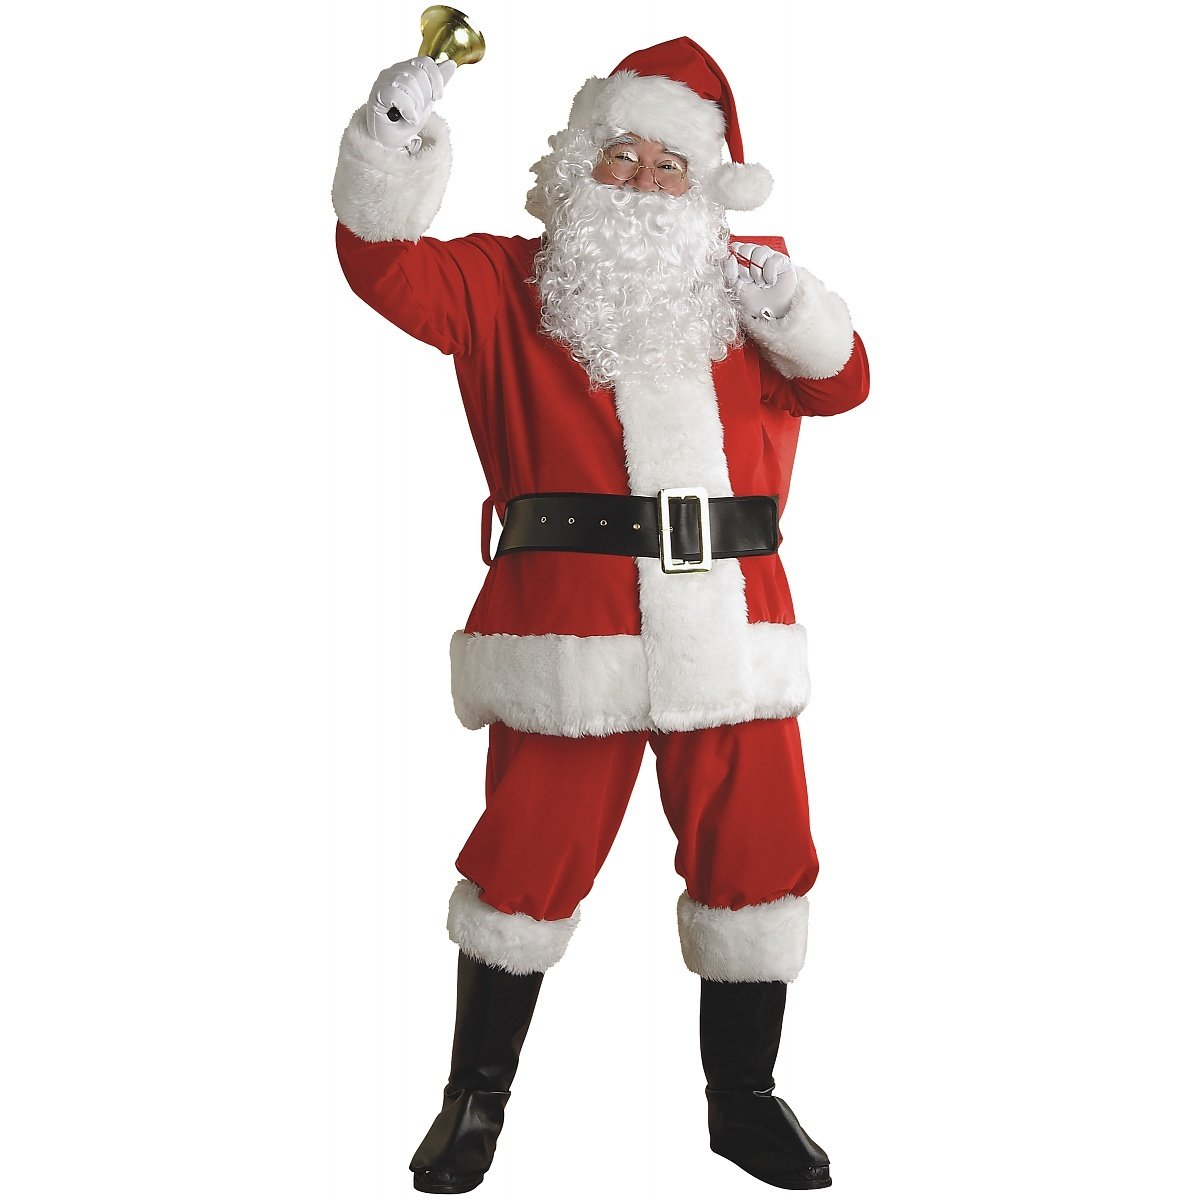 Rubie's Regal Plush Santa Suit with Wig and Beard, Red/White, XX-Large